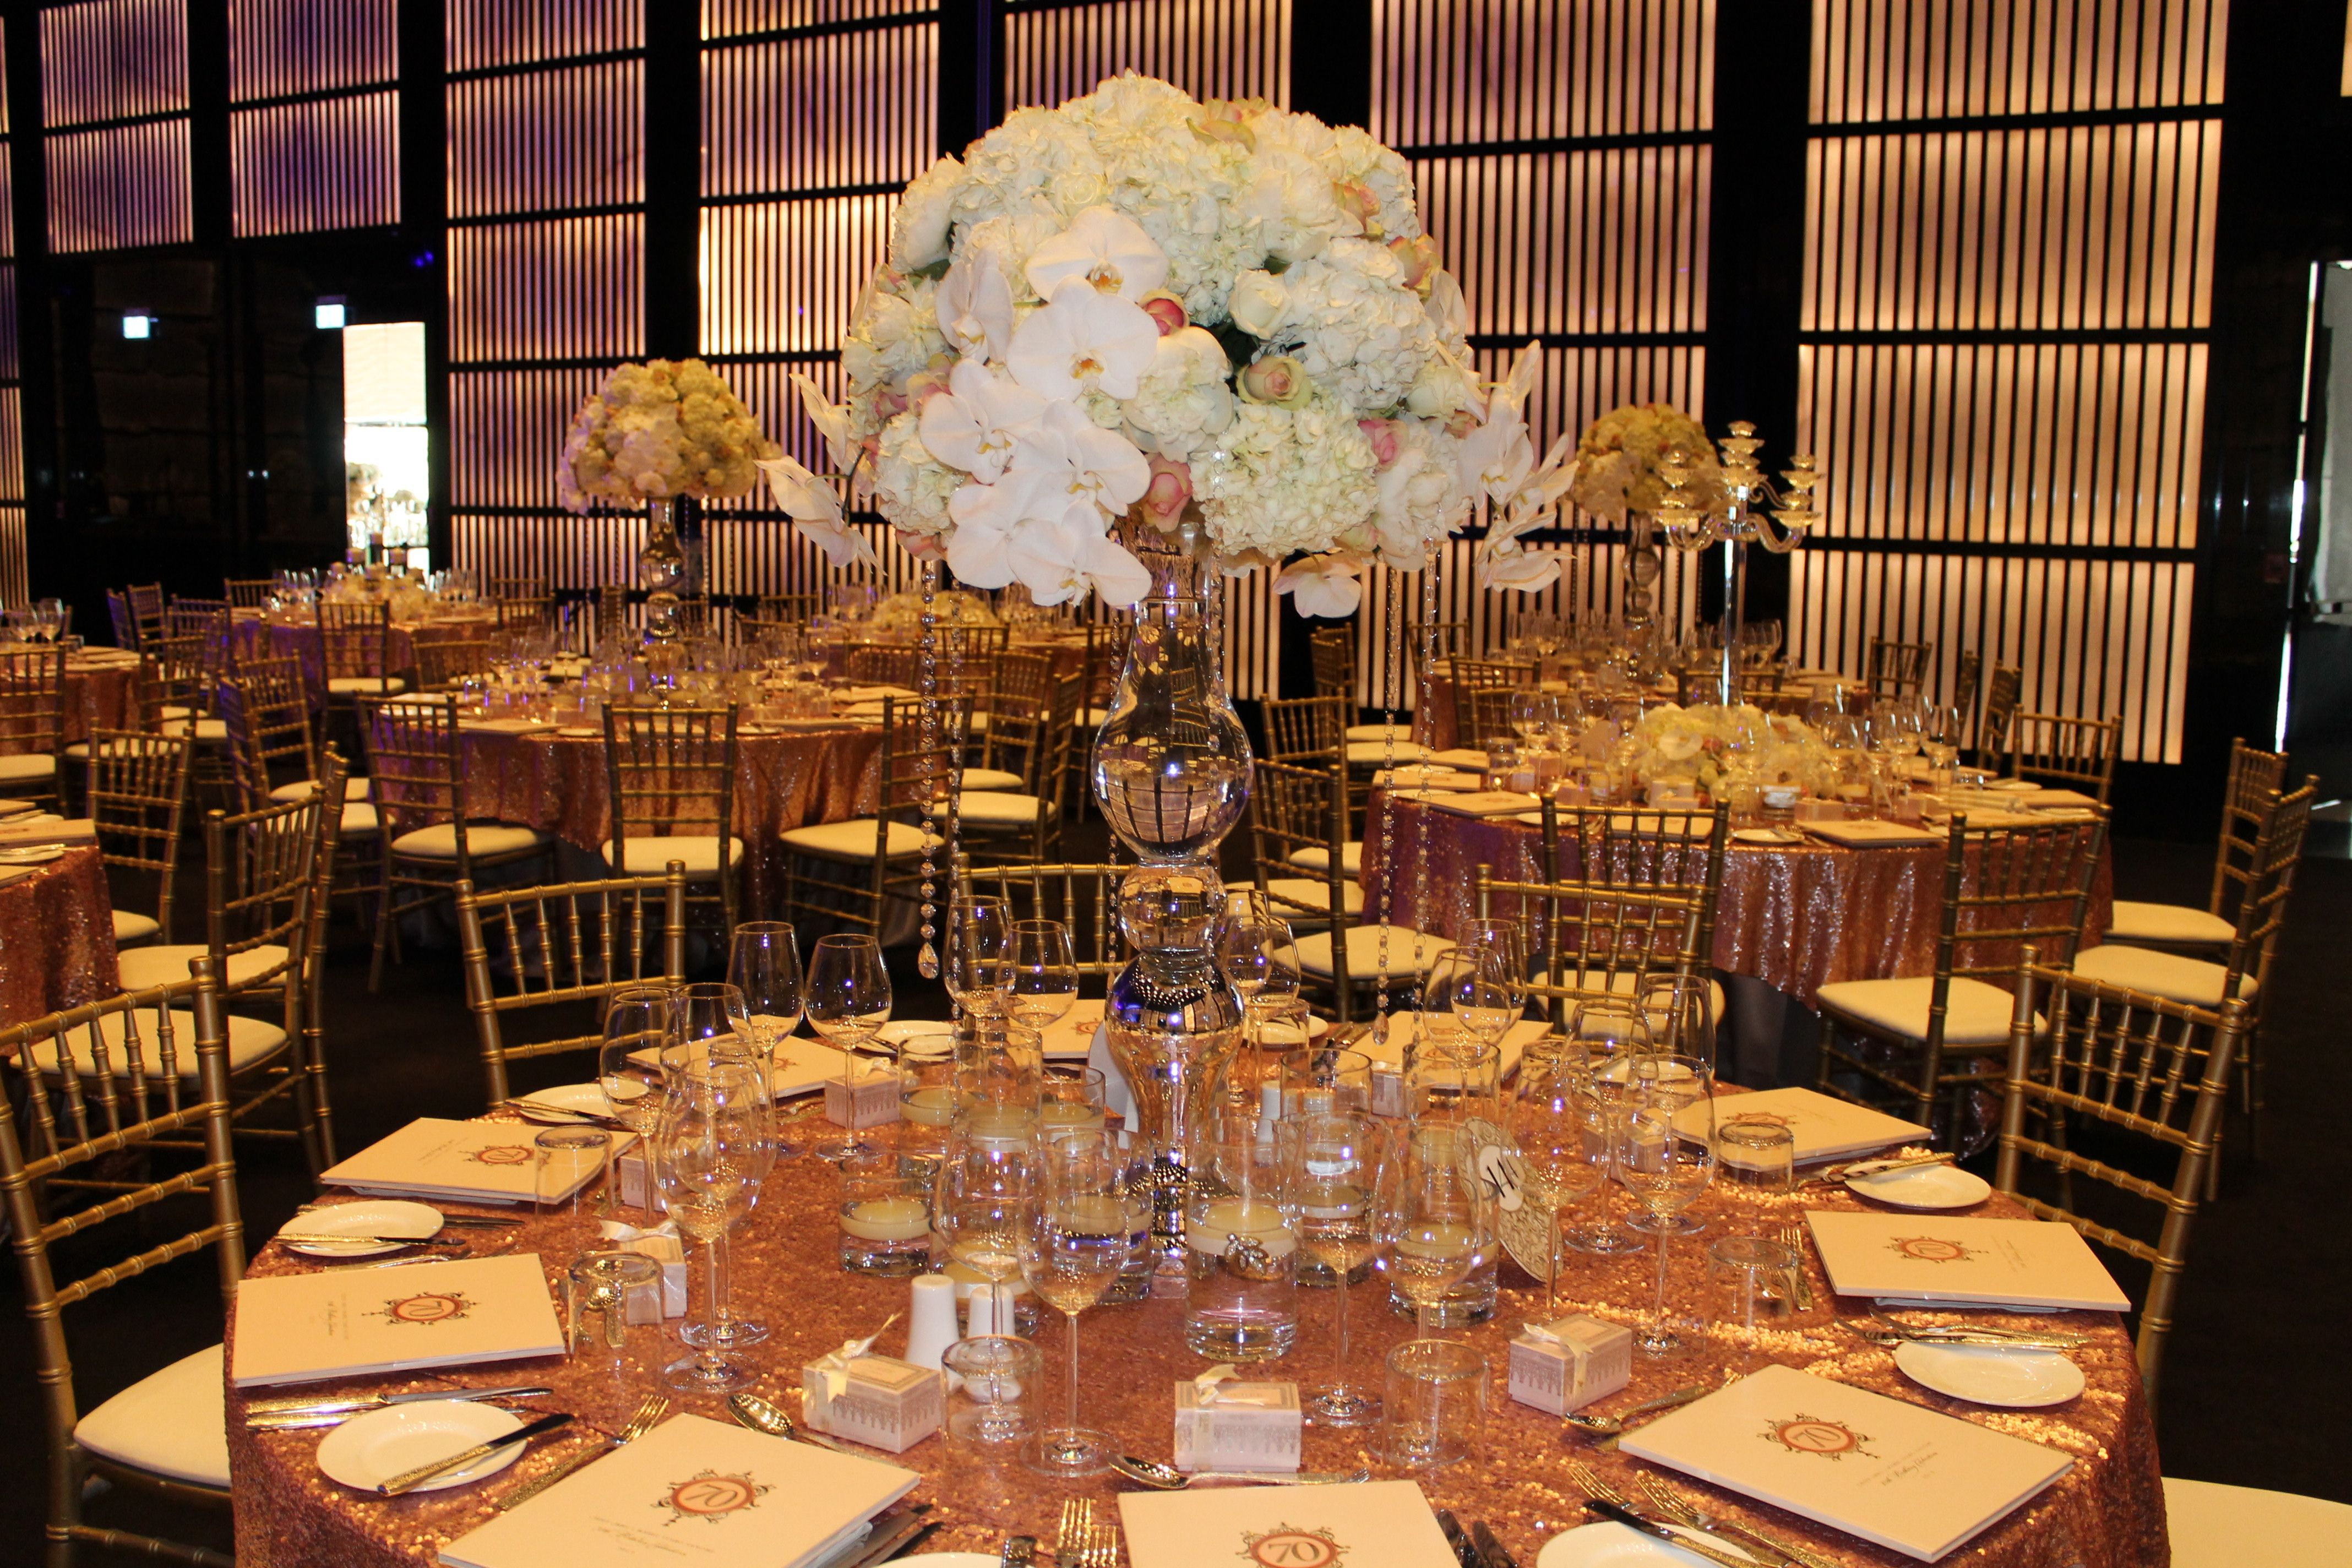 Wedding decor by art and flower armani hotel event dubai for Hotel wedding decor